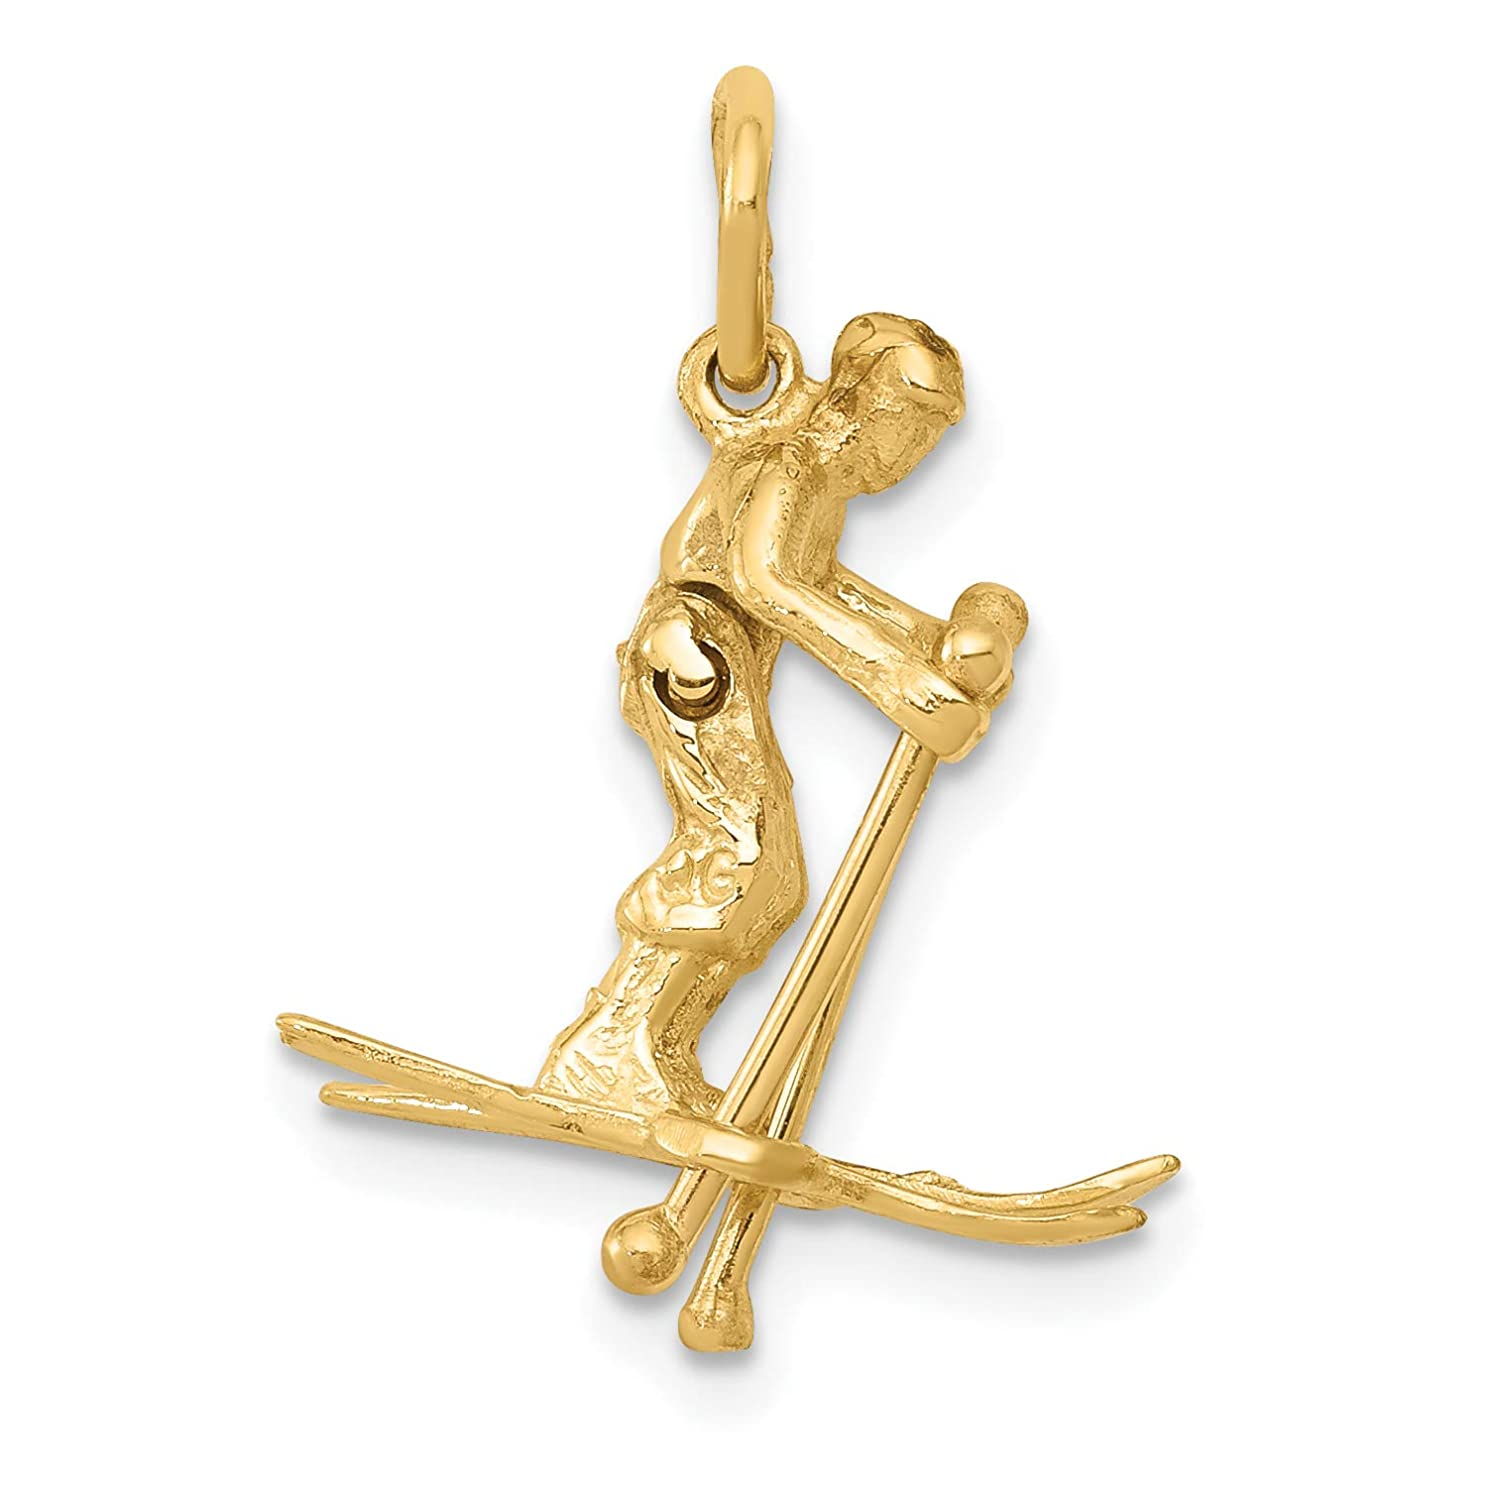 20 x 15 mm 14k Yellow Gold Moveable Snow Skier Charm